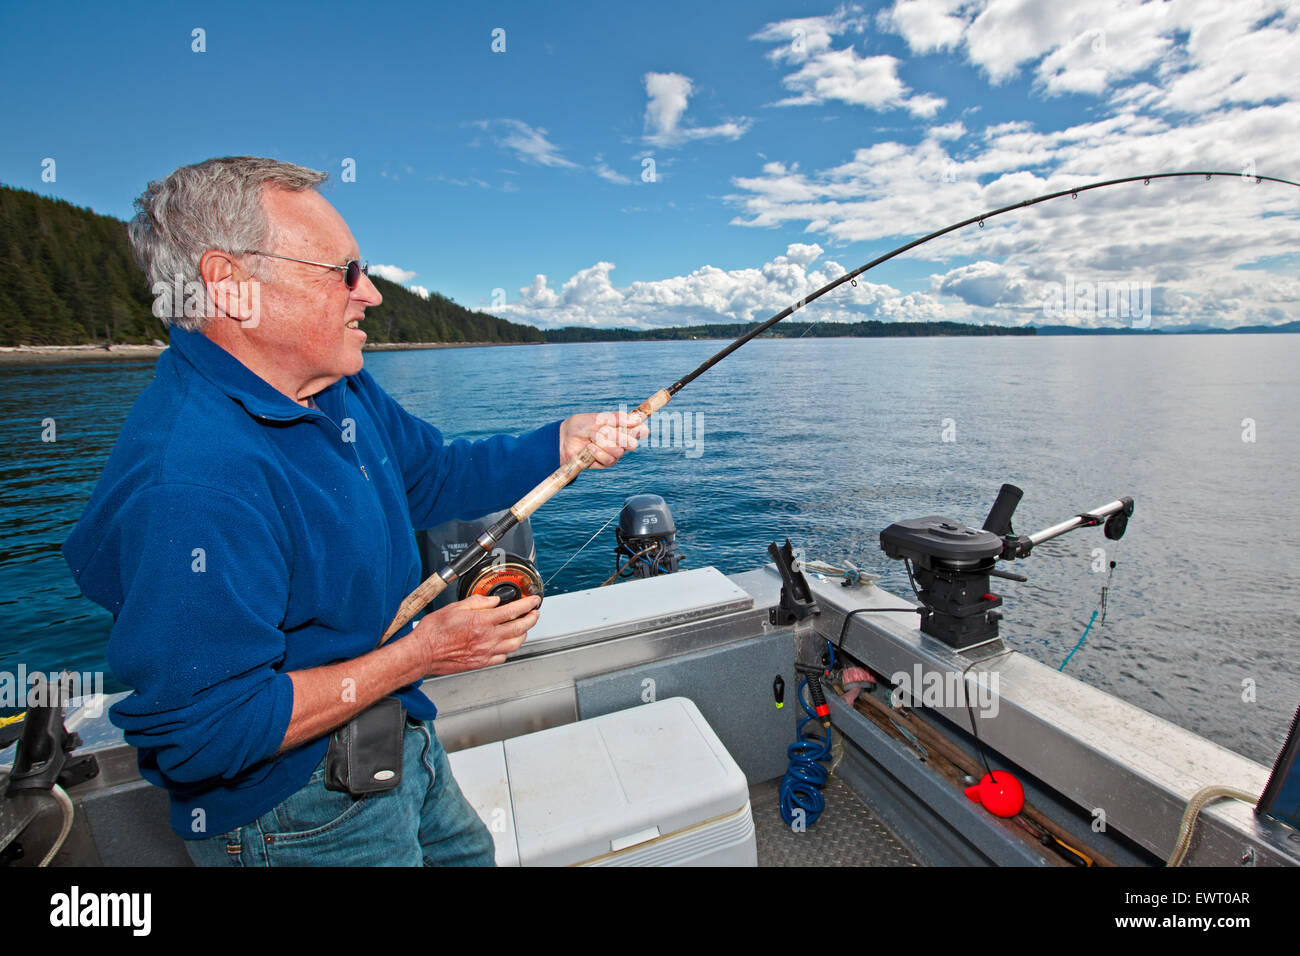 Senior retired man fishing with fishing rod in his hands off Northern Vancouver Island in British Columbia, Canada. - Stock Image